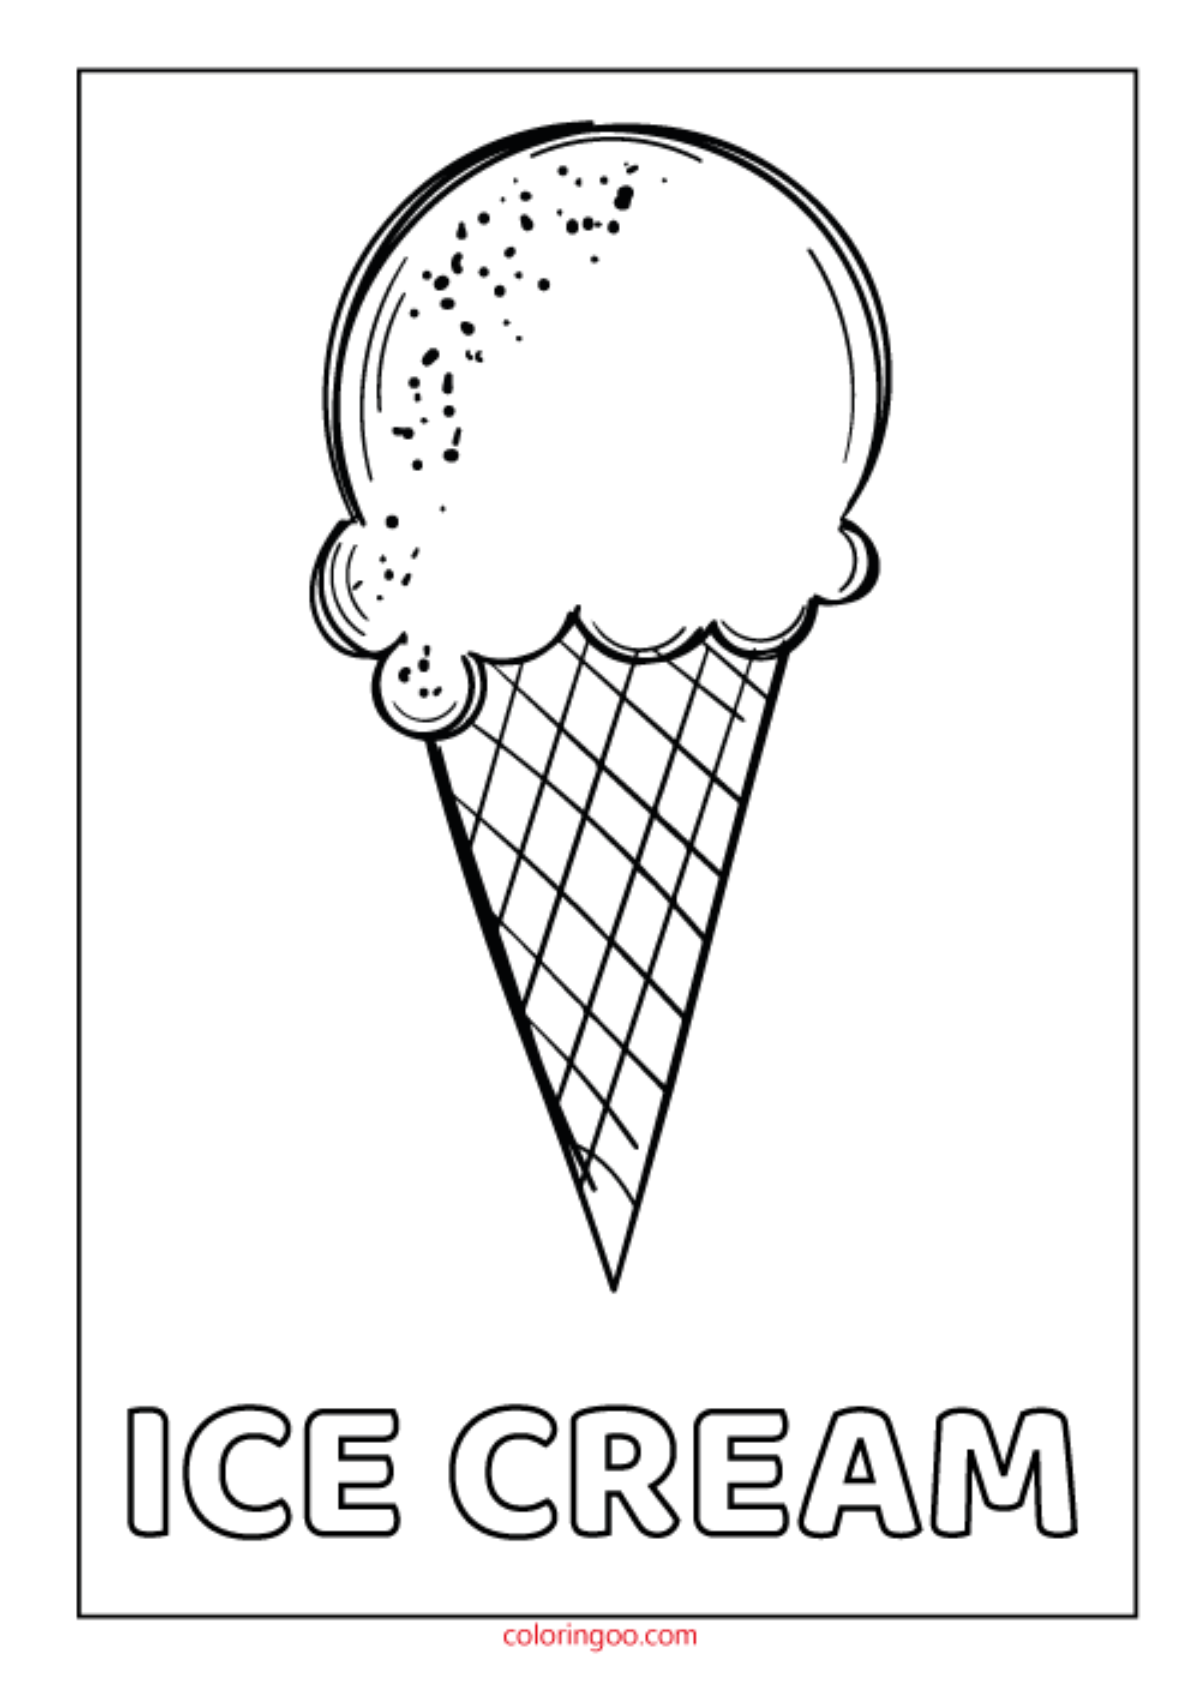 Printable Ice Cream PDF Coloring Pages for Kids